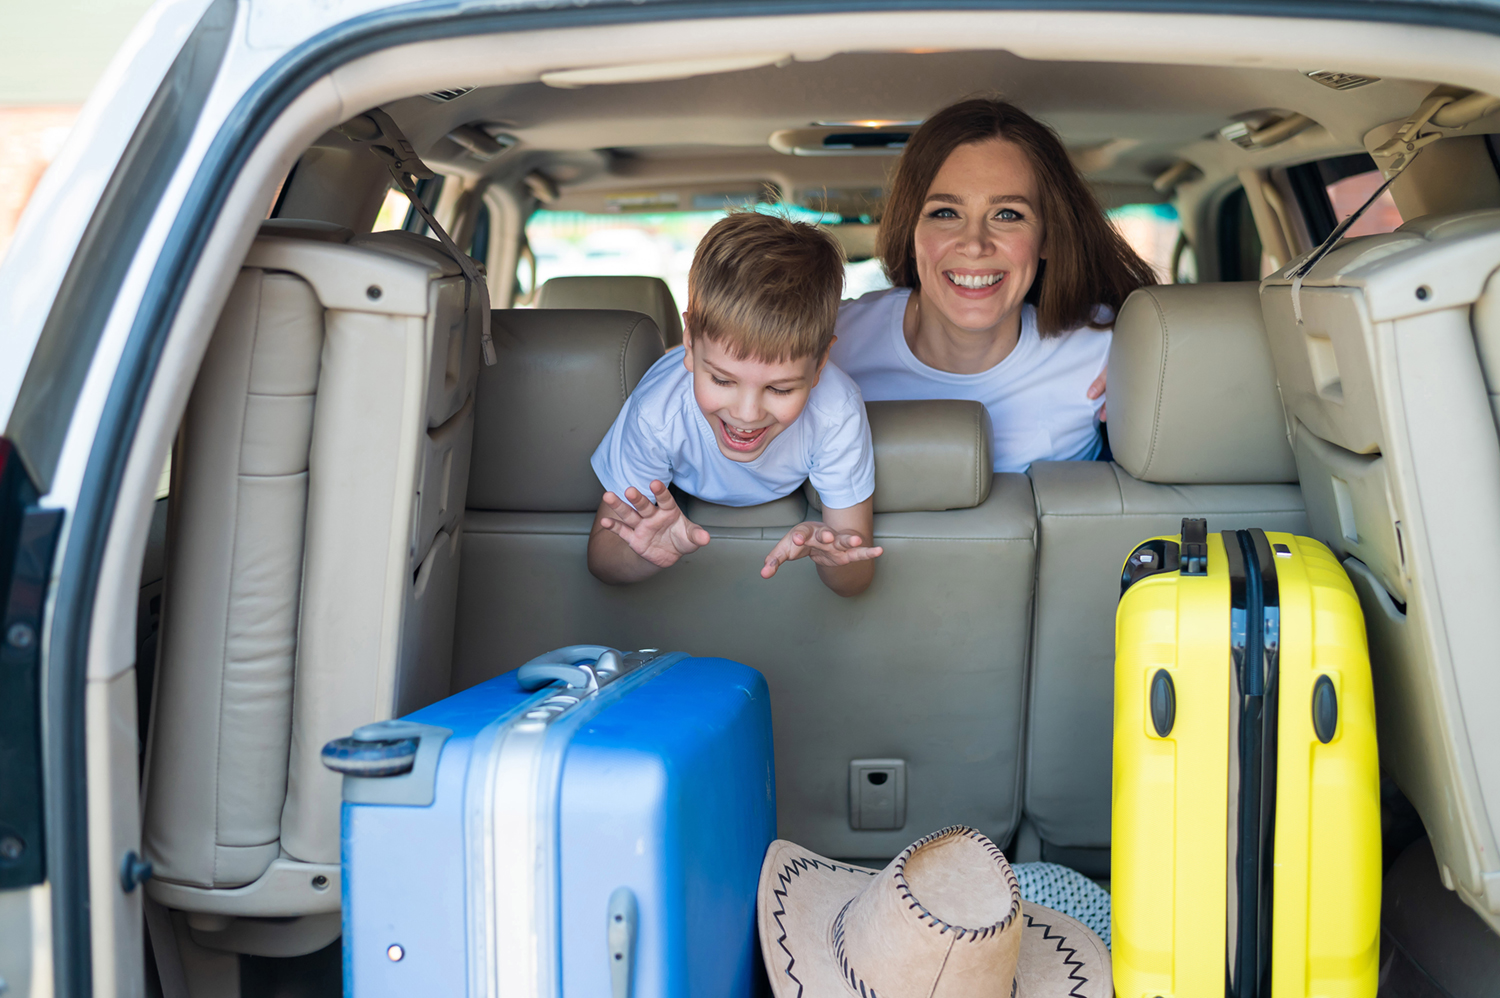 Packing Essentials in Your Car on a Cross-country Move